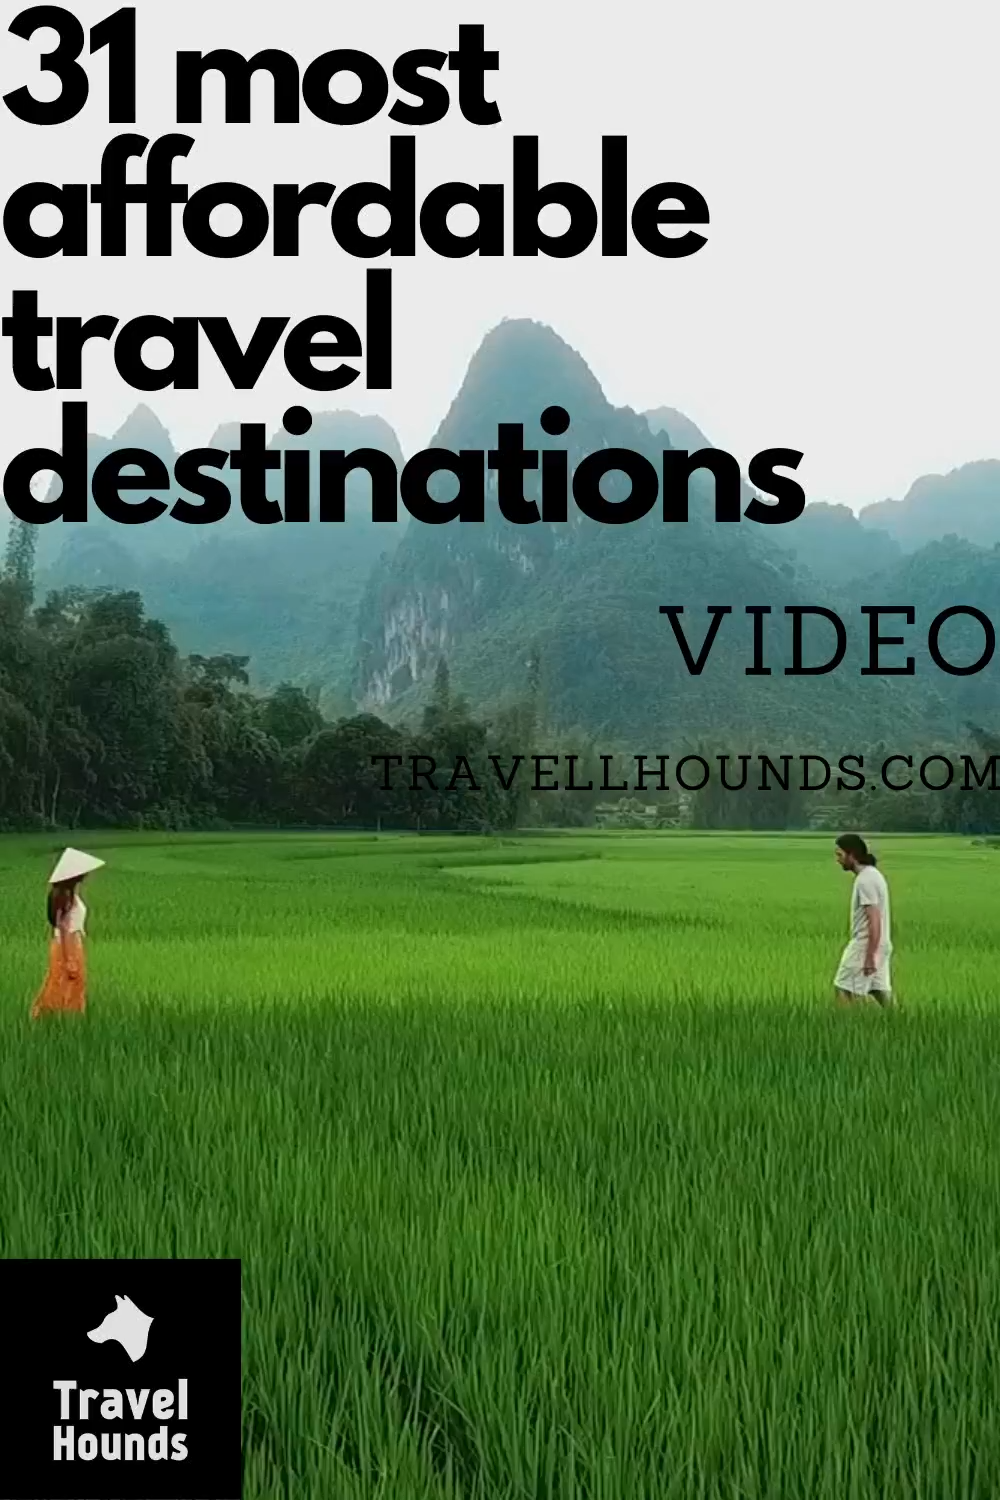 inexpensive travel doesn't have to suck, check out these awesome spots #budgetfrendlytravel #cheaptravel